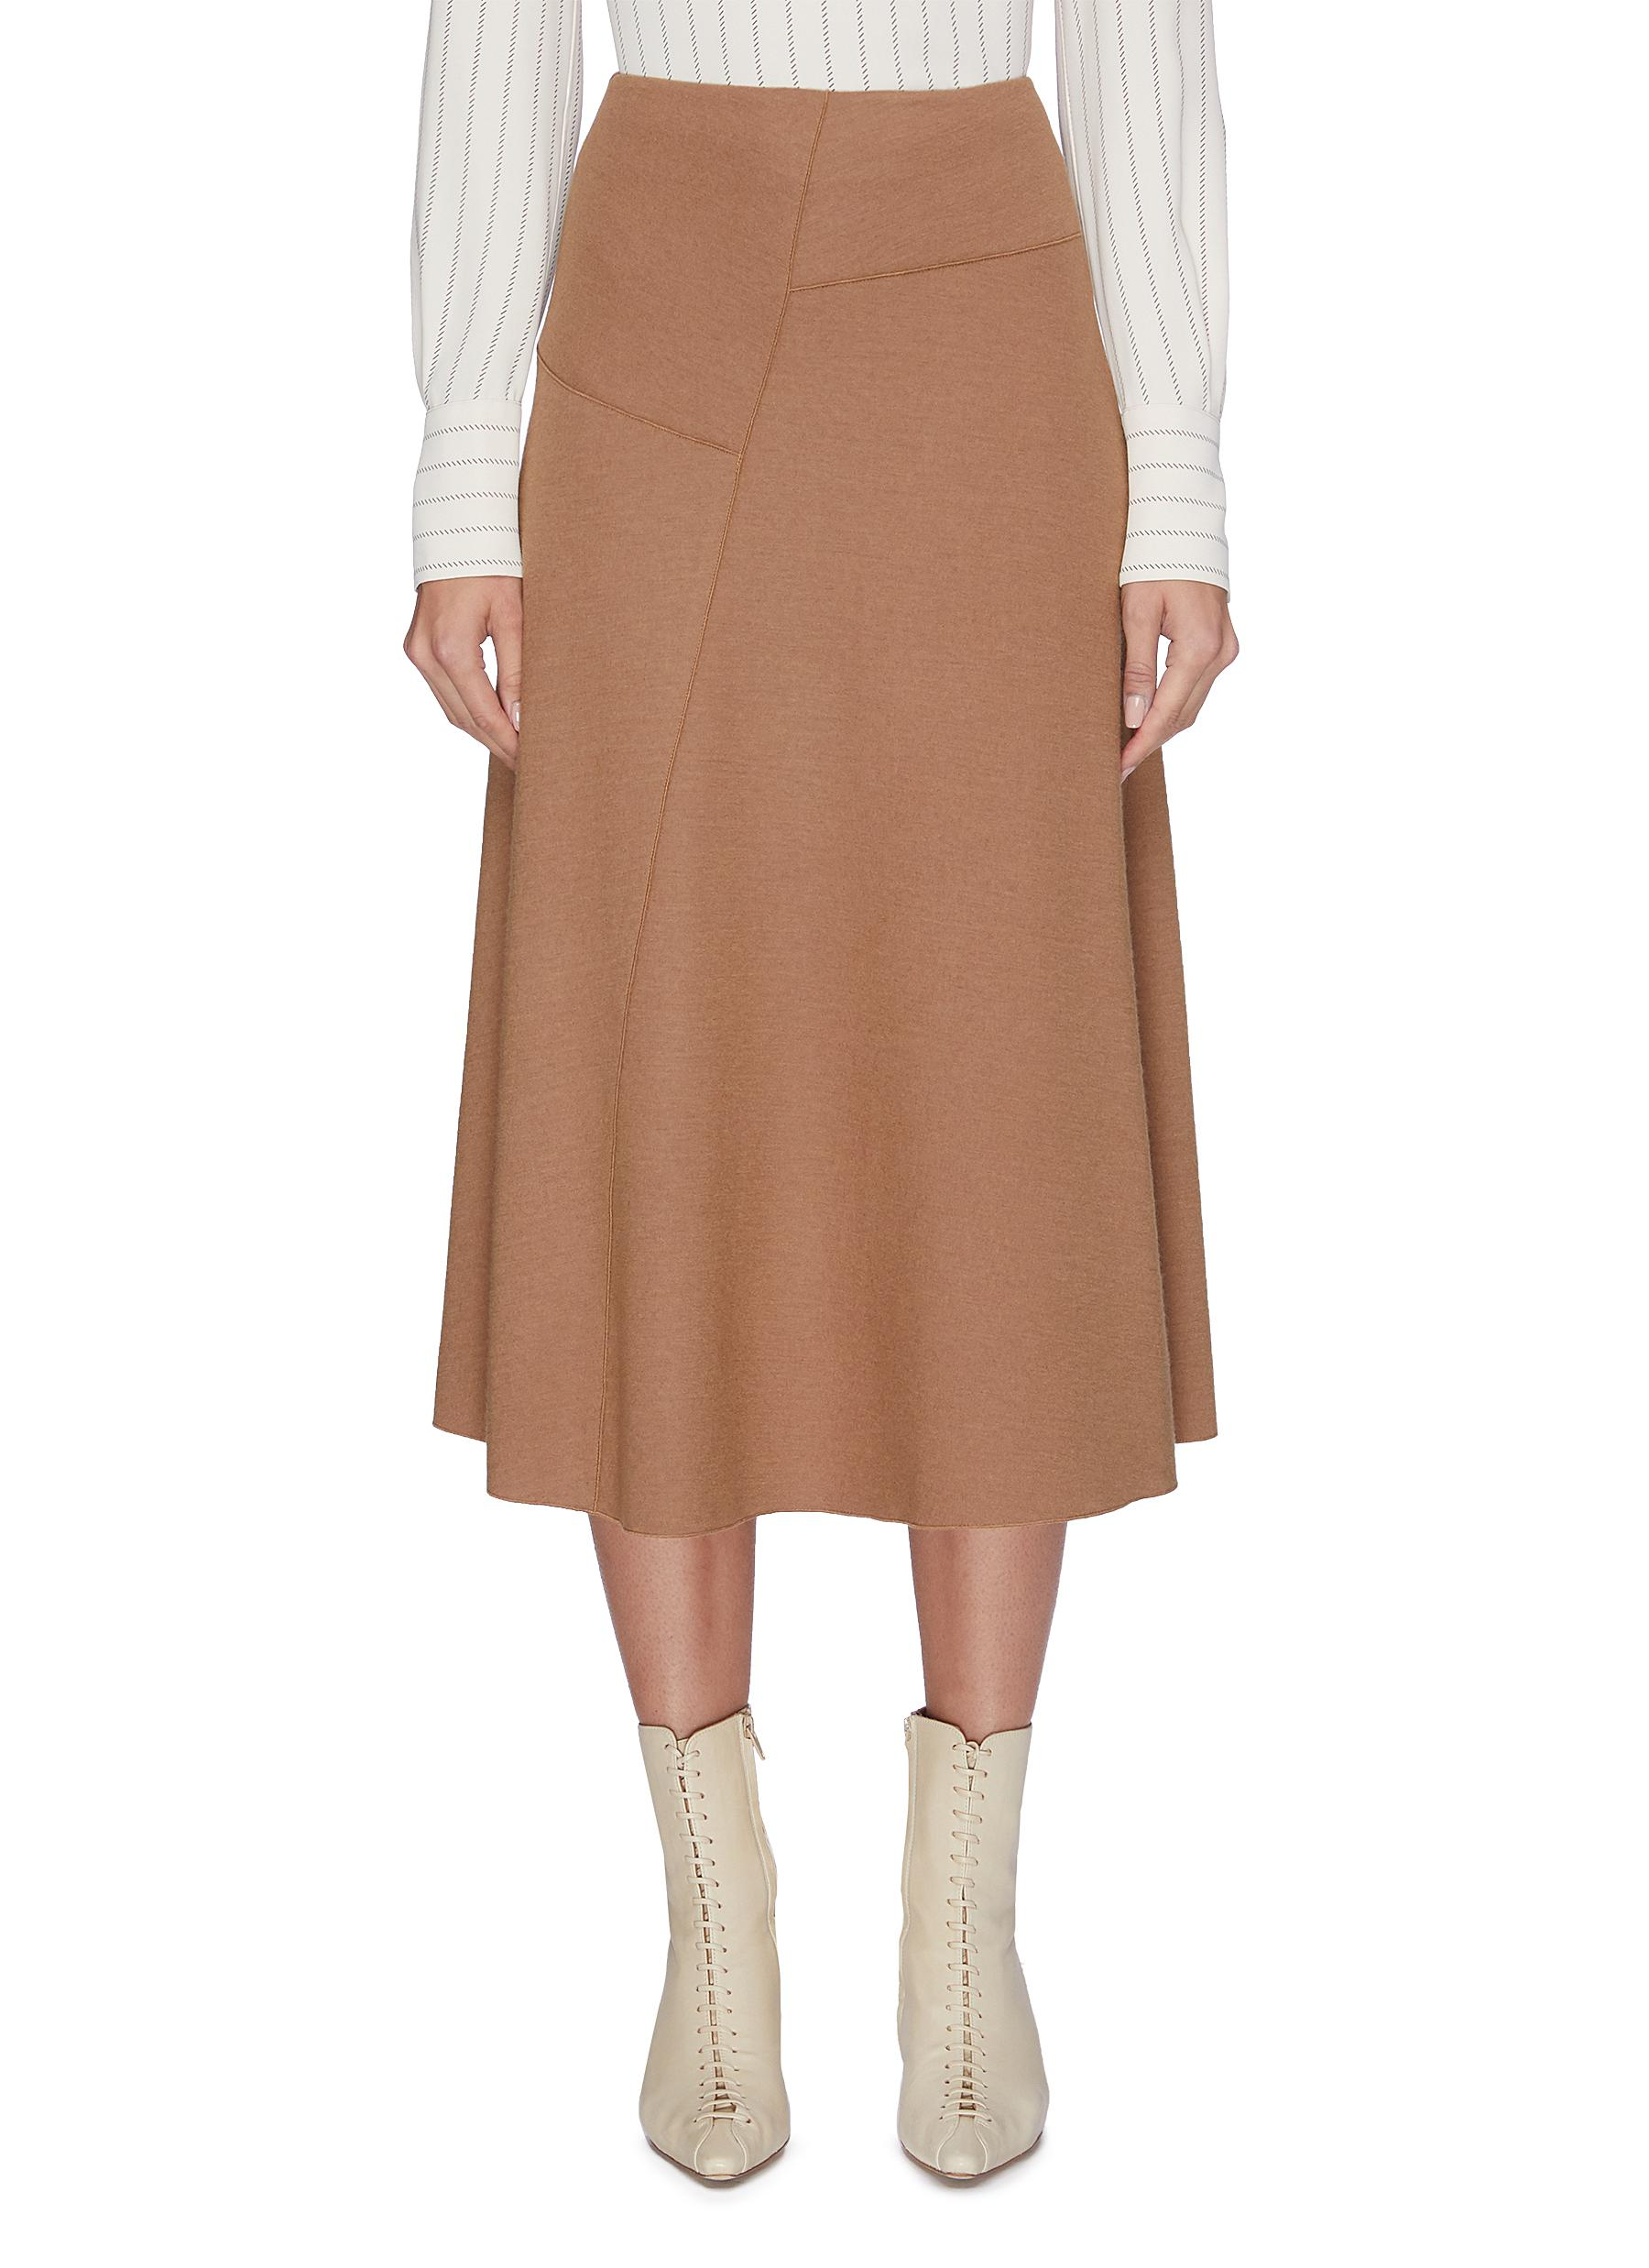 Wool-blend midi skirt by Vince